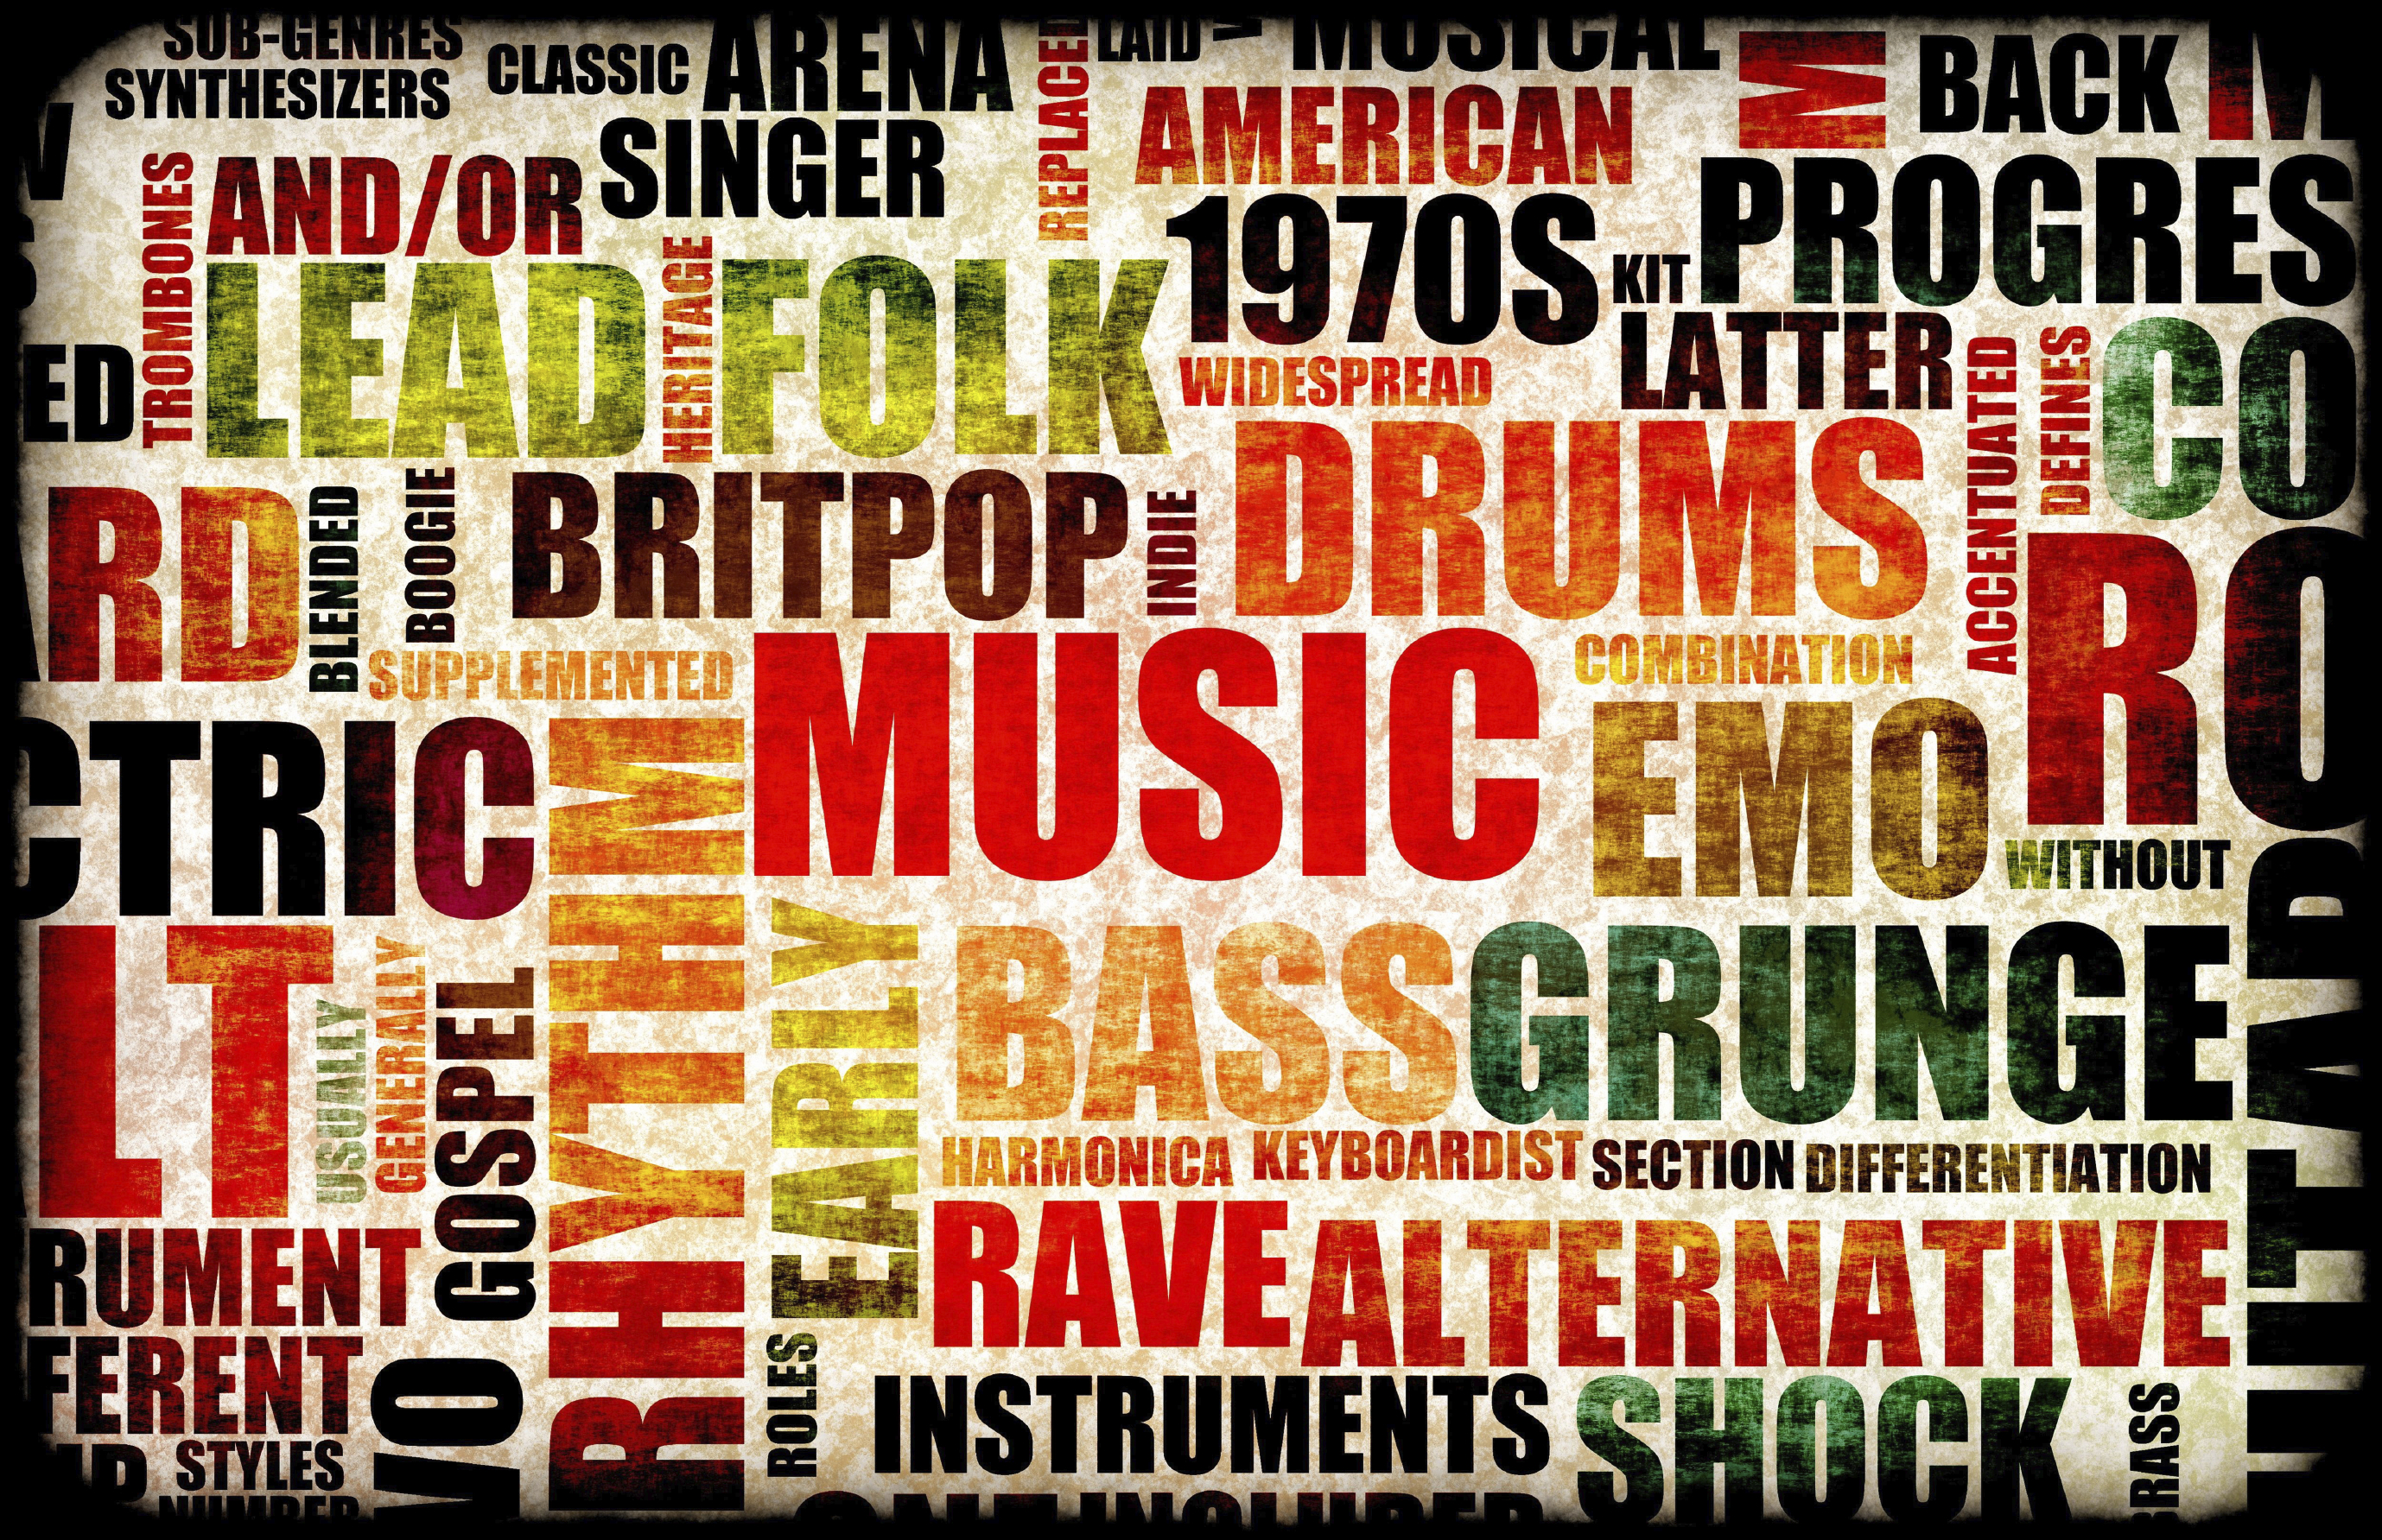 music different genres types background genre preferences musical various therapy matter words shutterstock why singing comments